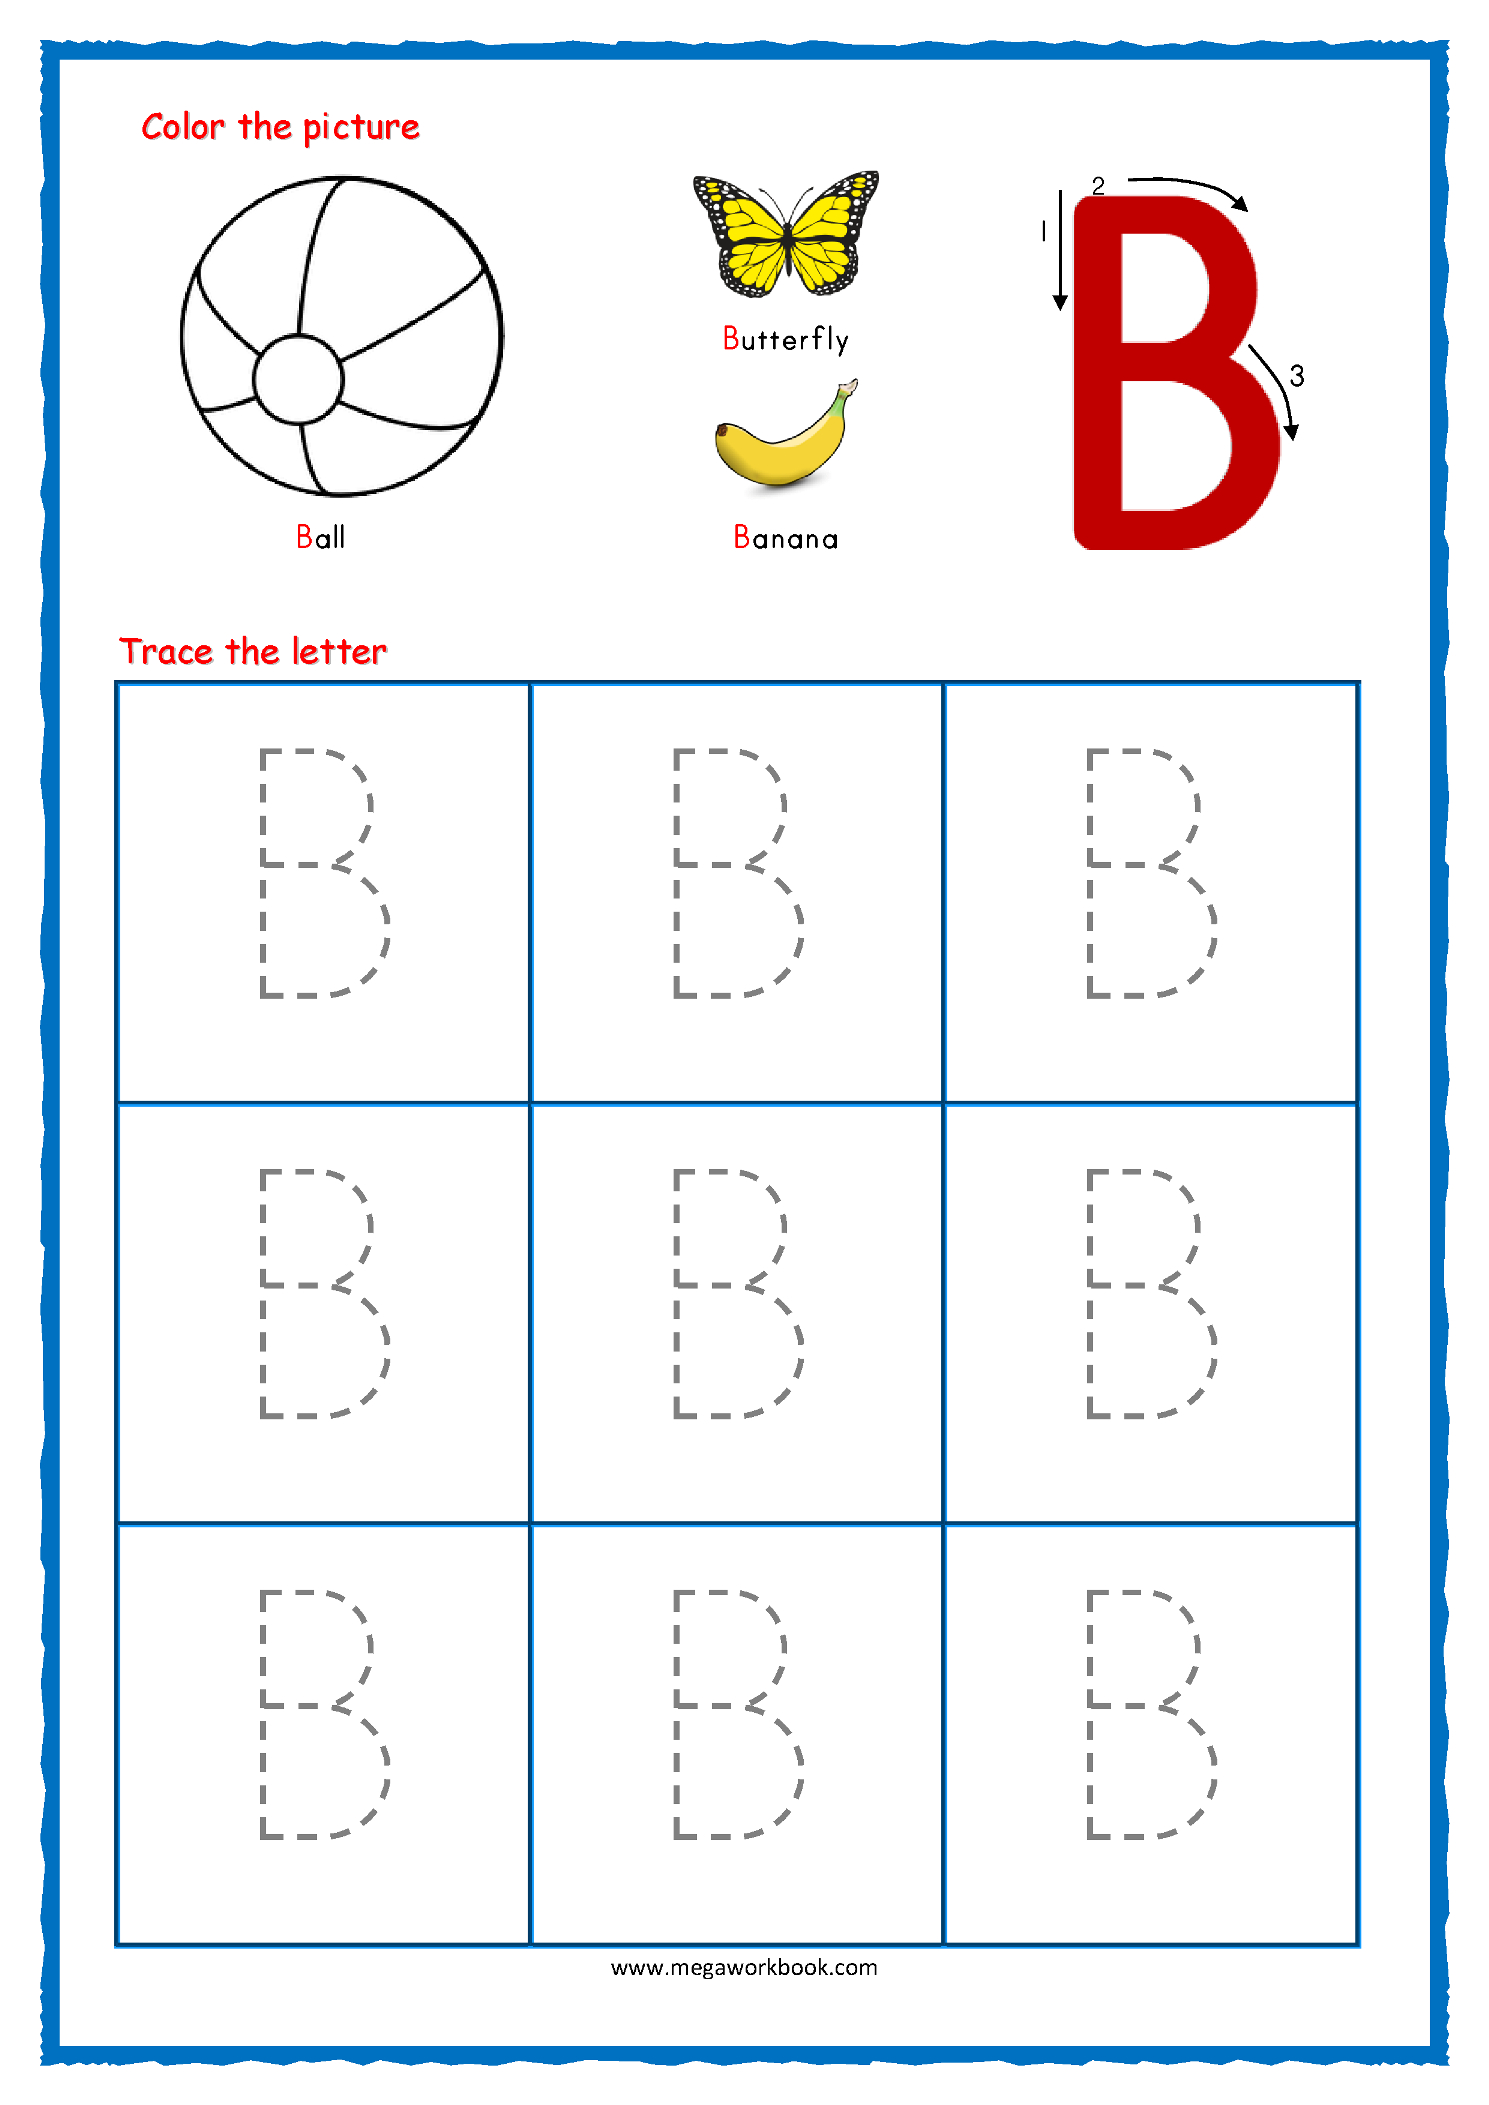 Tracing Letters - Alphabet Tracing - Capital Letters throughout Alphabet Tracing Worksheets For Preschool